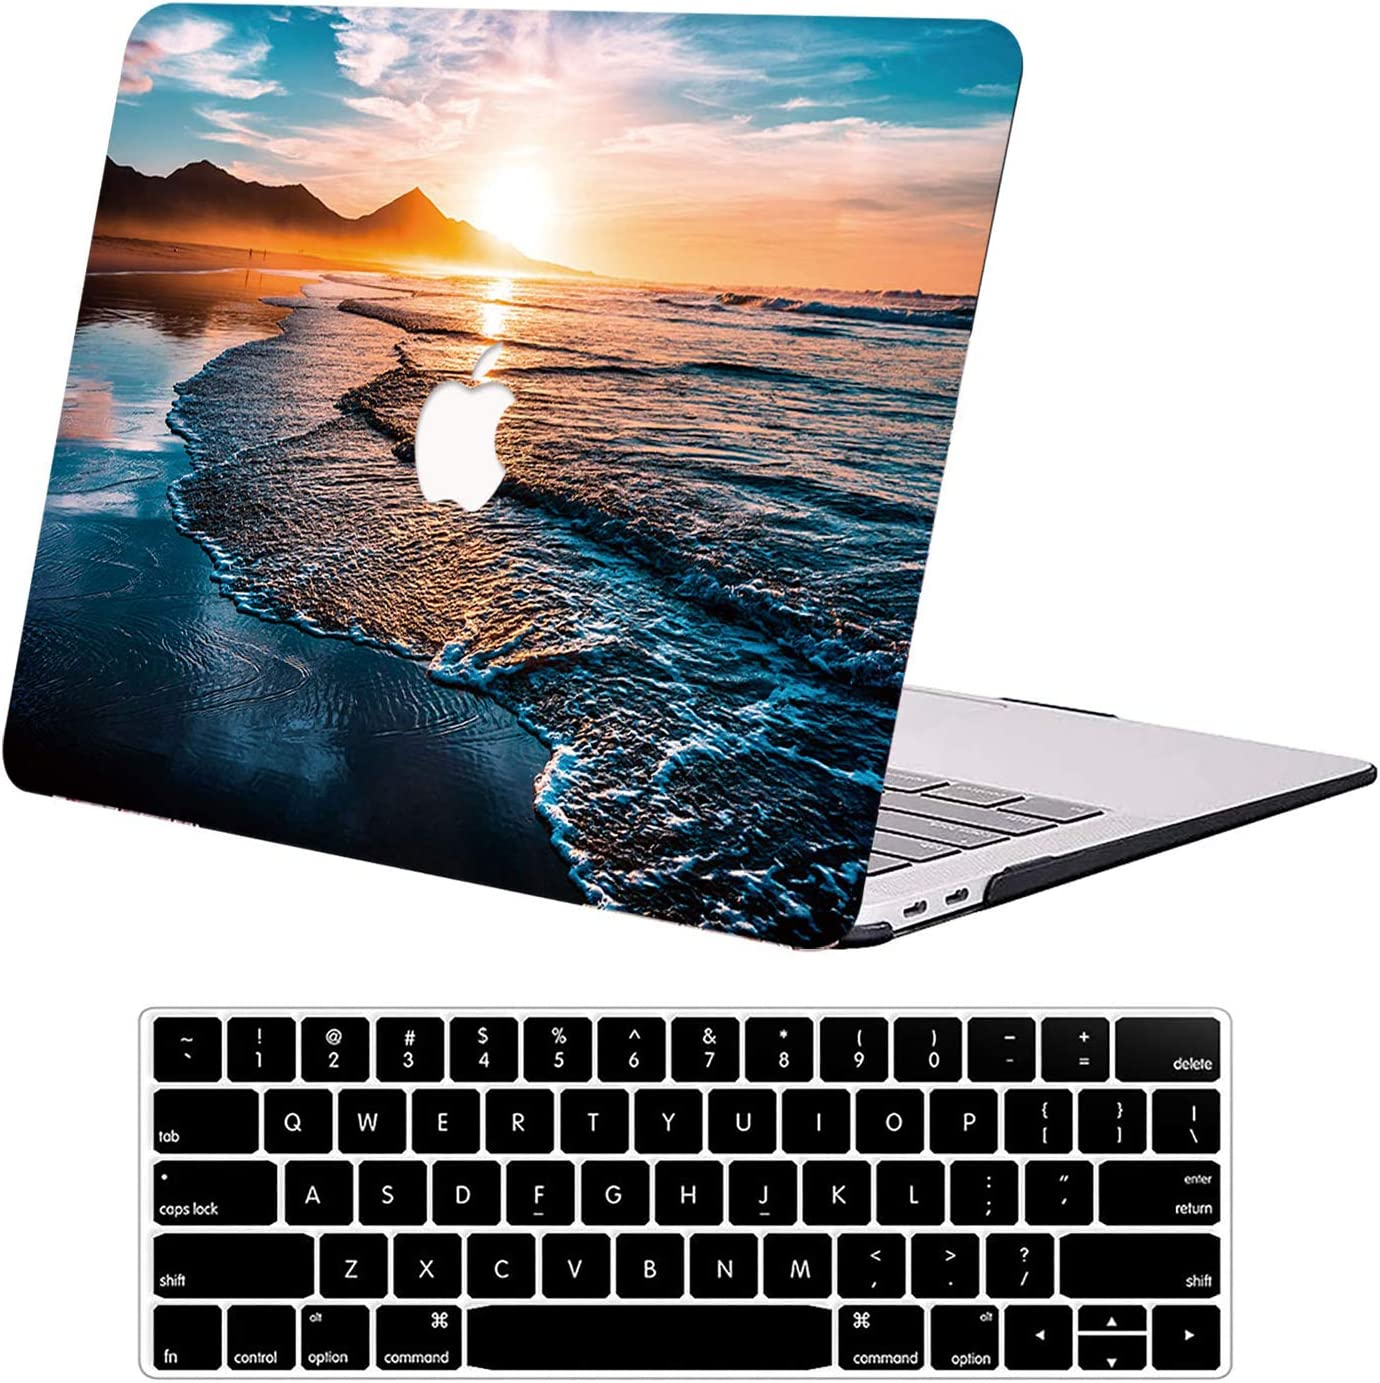 Compatible with MacBook Pro 13 inch Case 2020 A2338 M1 A2251 A2289 A2159 A1989 DTangLsm Rubberized Plastic Hard Shell Case&Keyboard Cover Slim Laptop Shell for 13inch Mac Pro 2016-2020 Release, Sunset